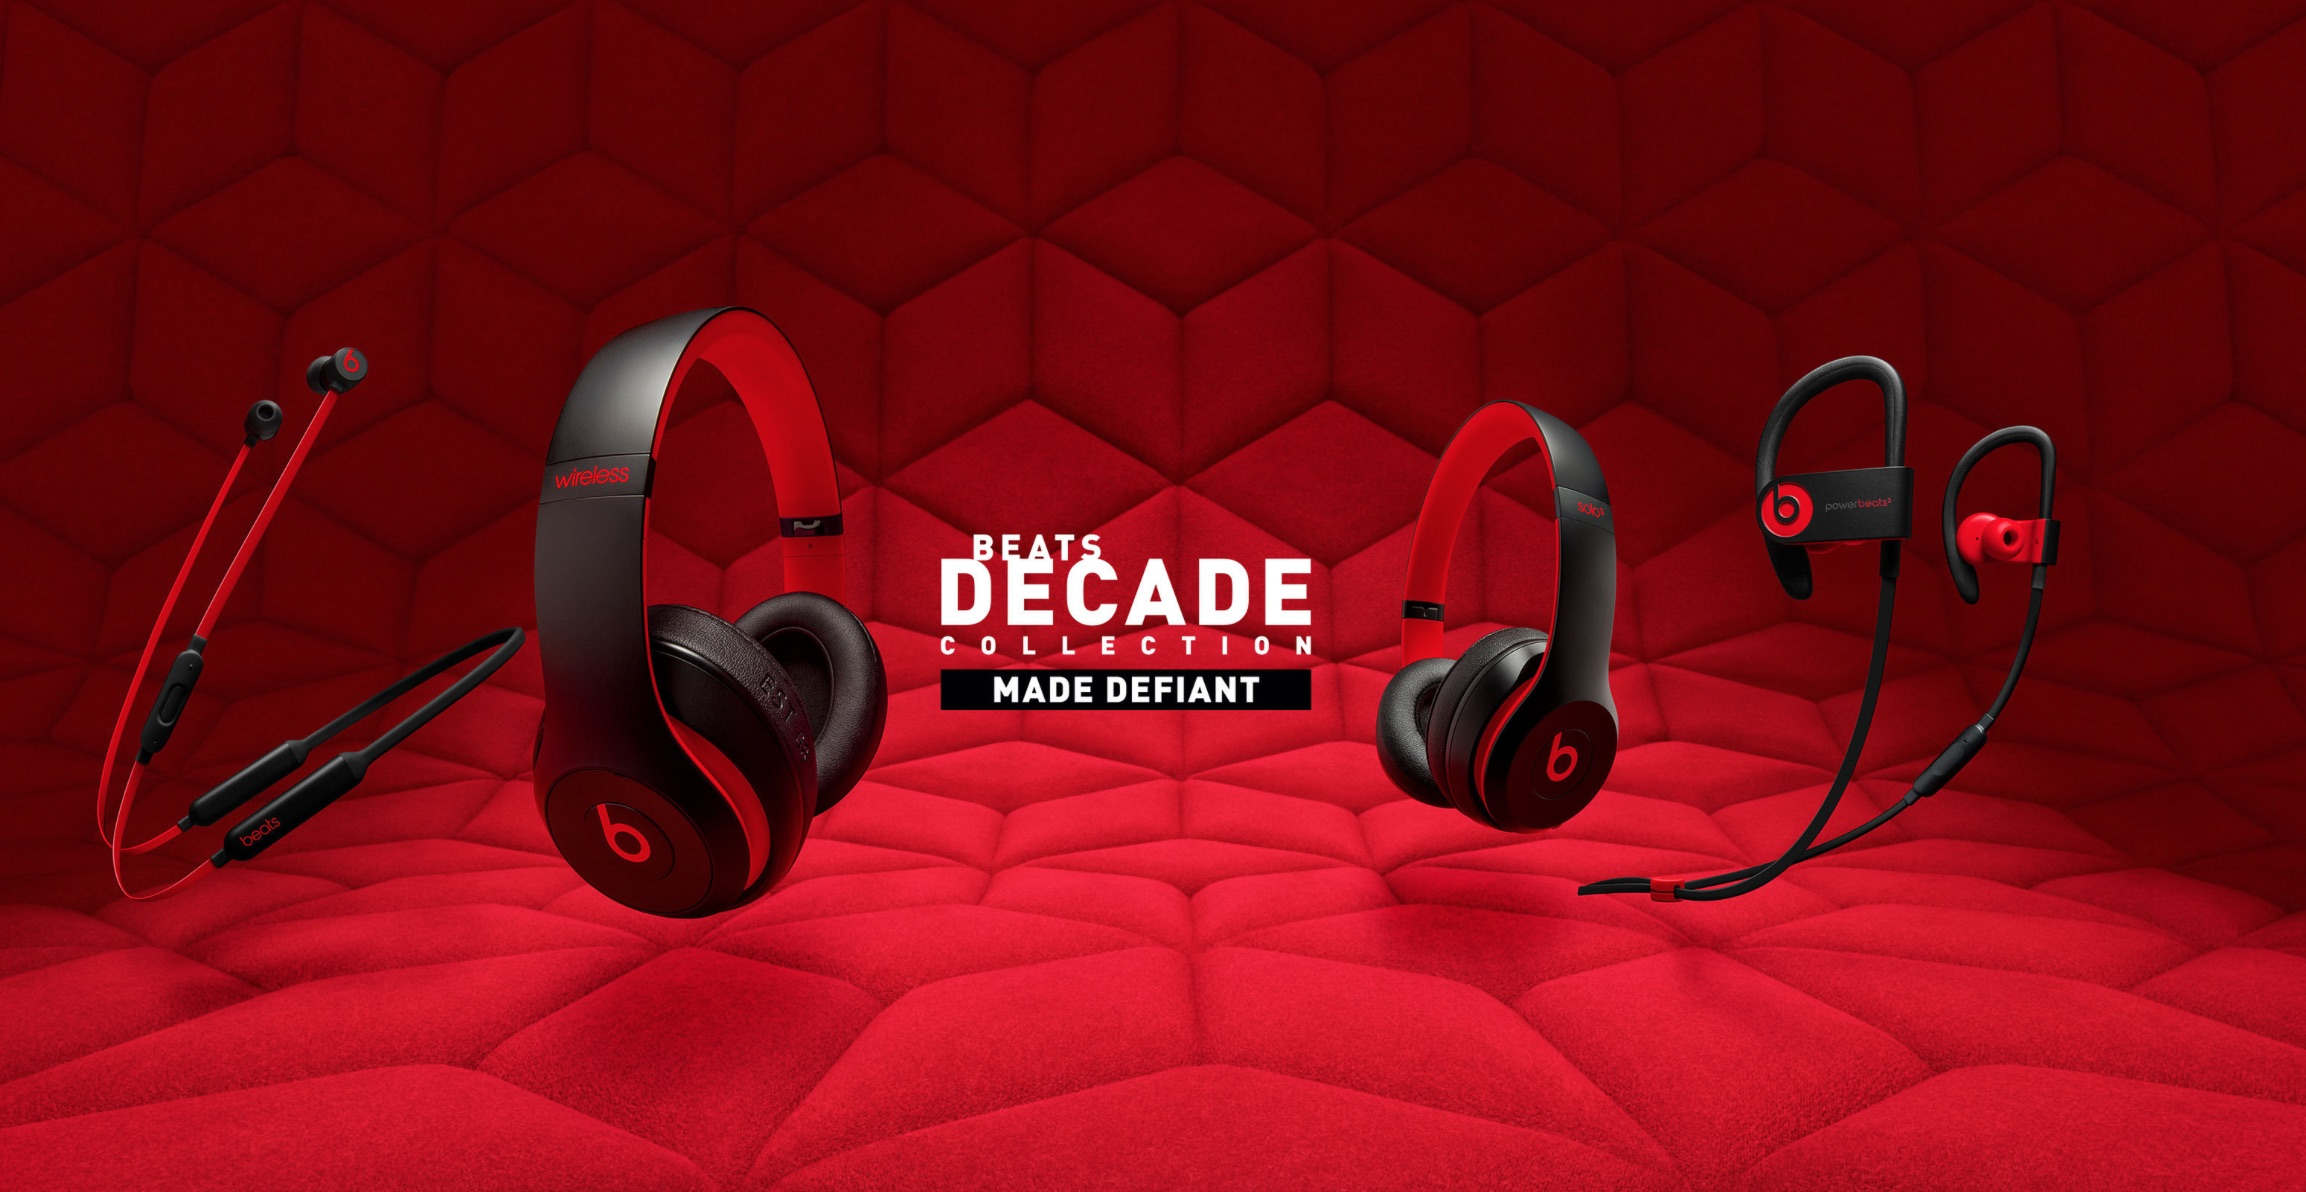 Apple Introduces Limited Edition Beats Decade Collection